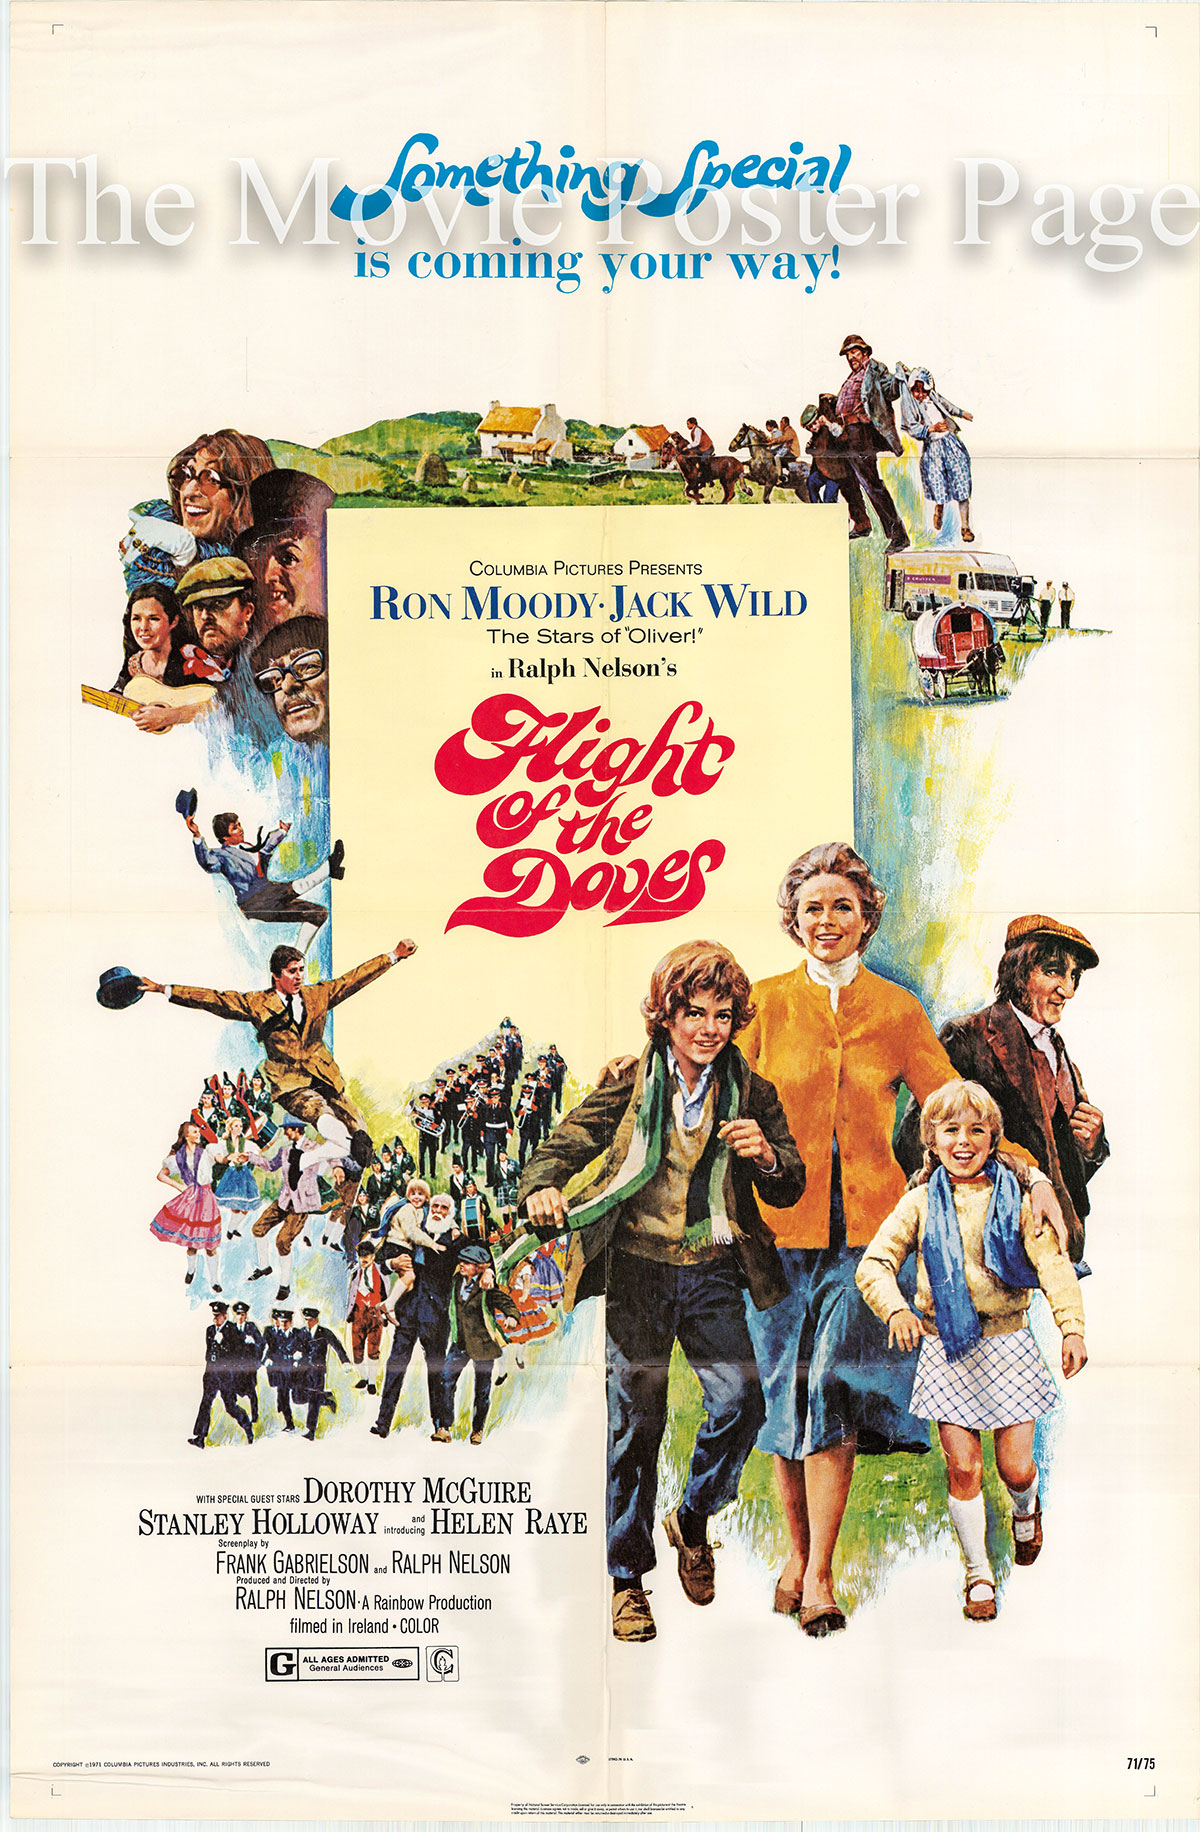 Pictured is an US promotional poster for the 1971 Ralph Nelson film Flight of the Doves, starring Ron Moody.